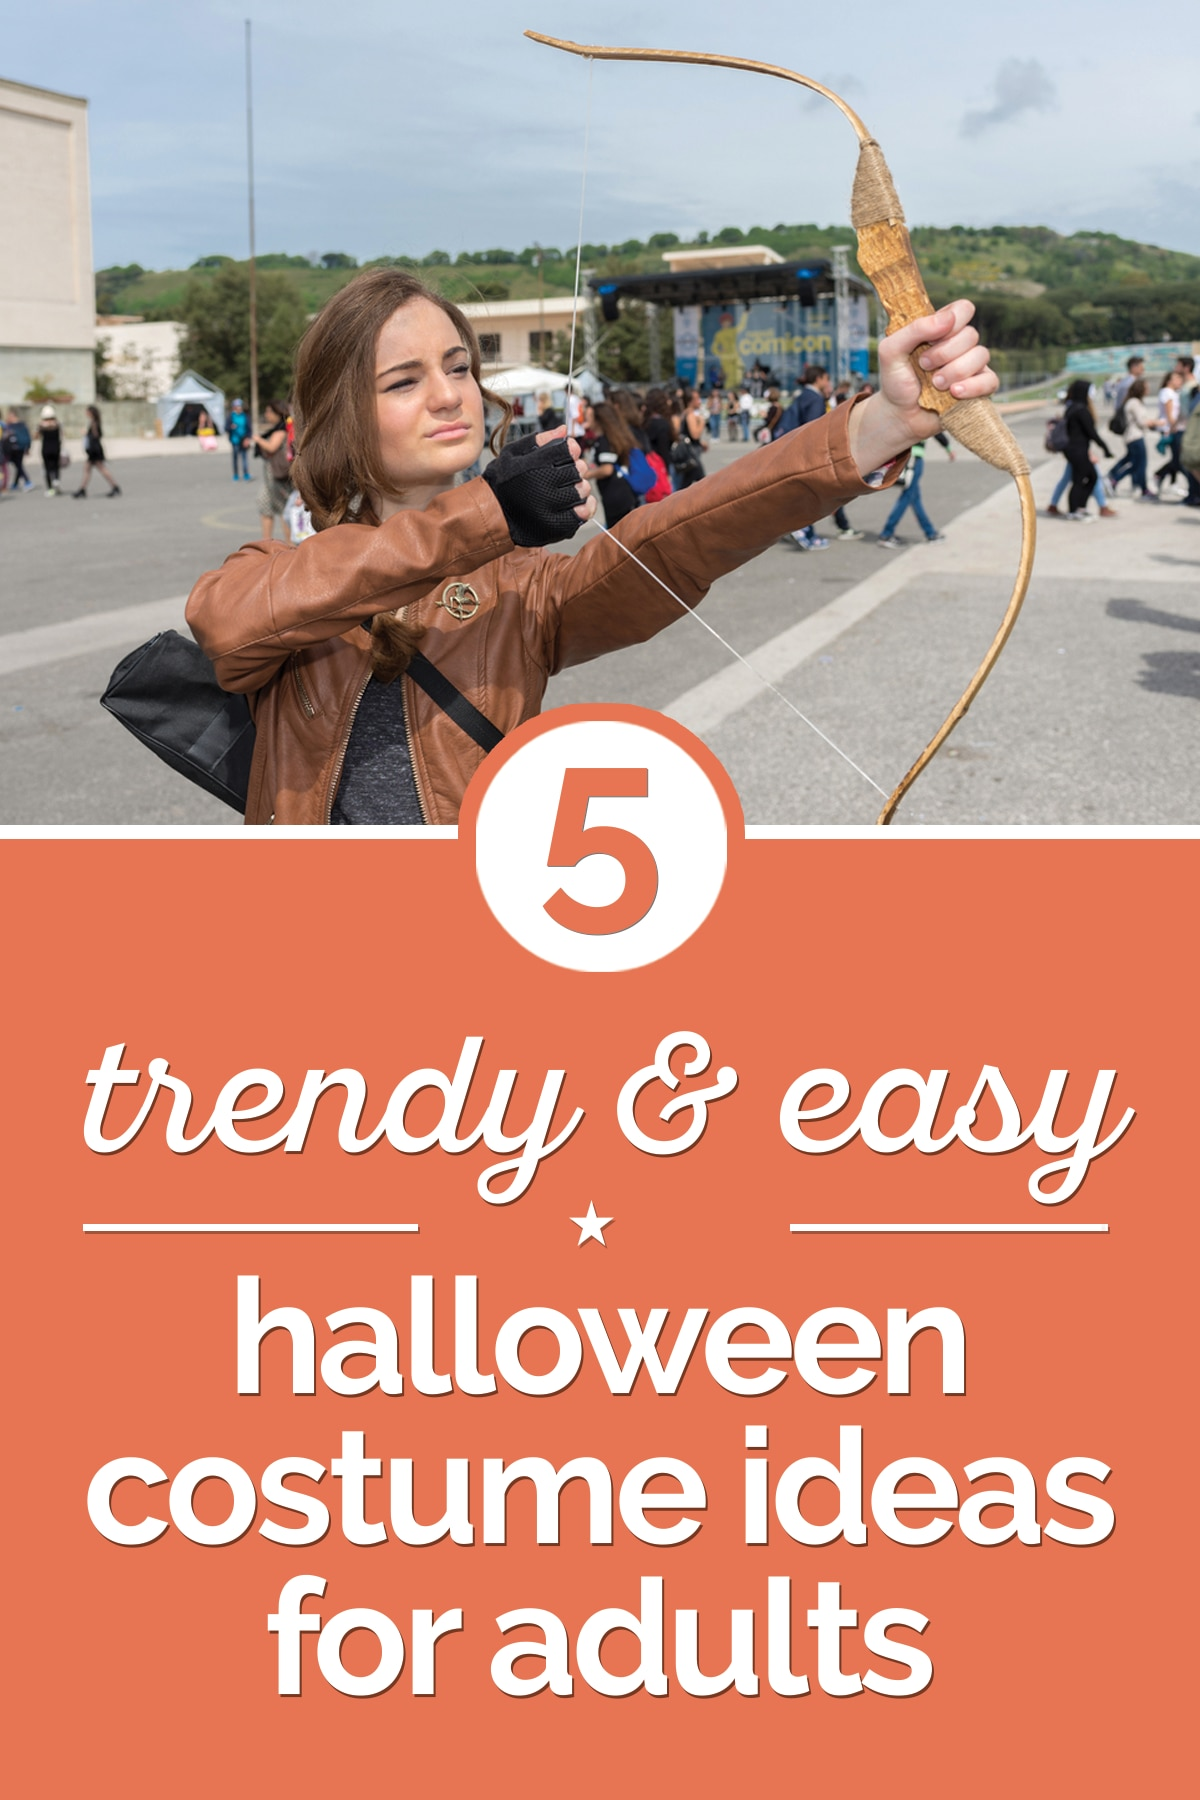 5 Trendy & Easy Halloween Costume Ideas for Adults | thegoodstuff